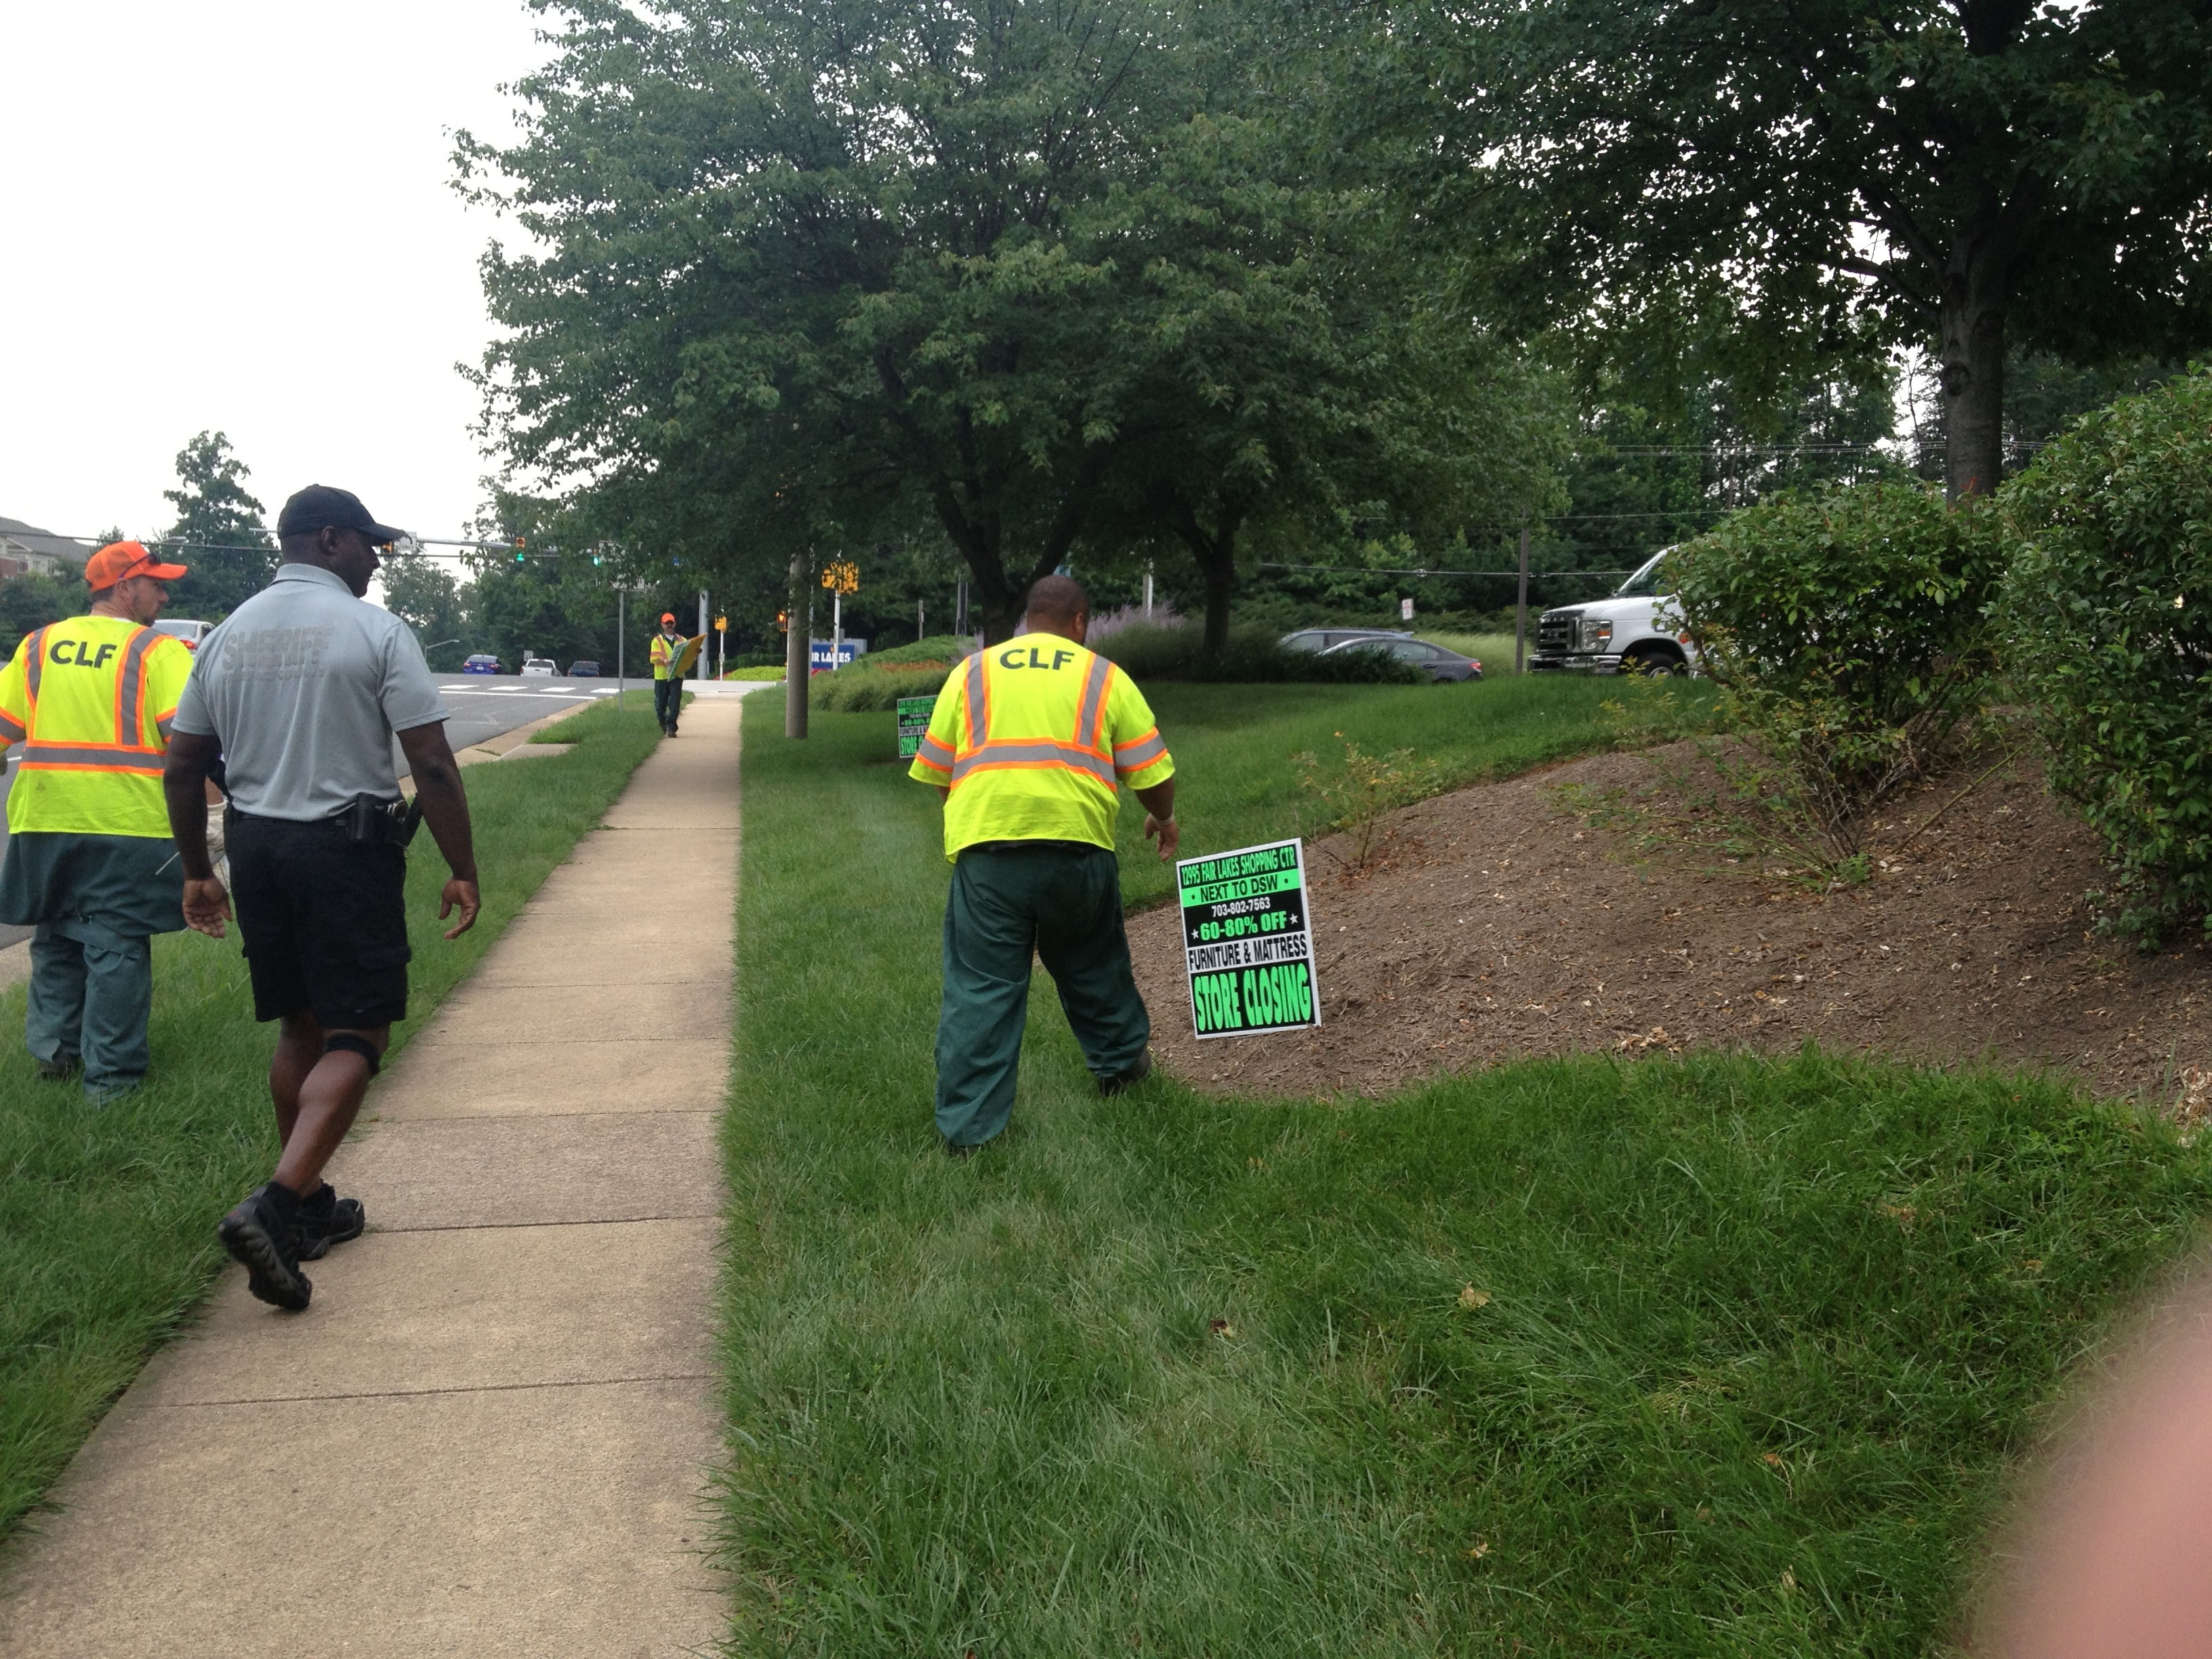 Roadside sign ban in Fairfax County leads to clean-up